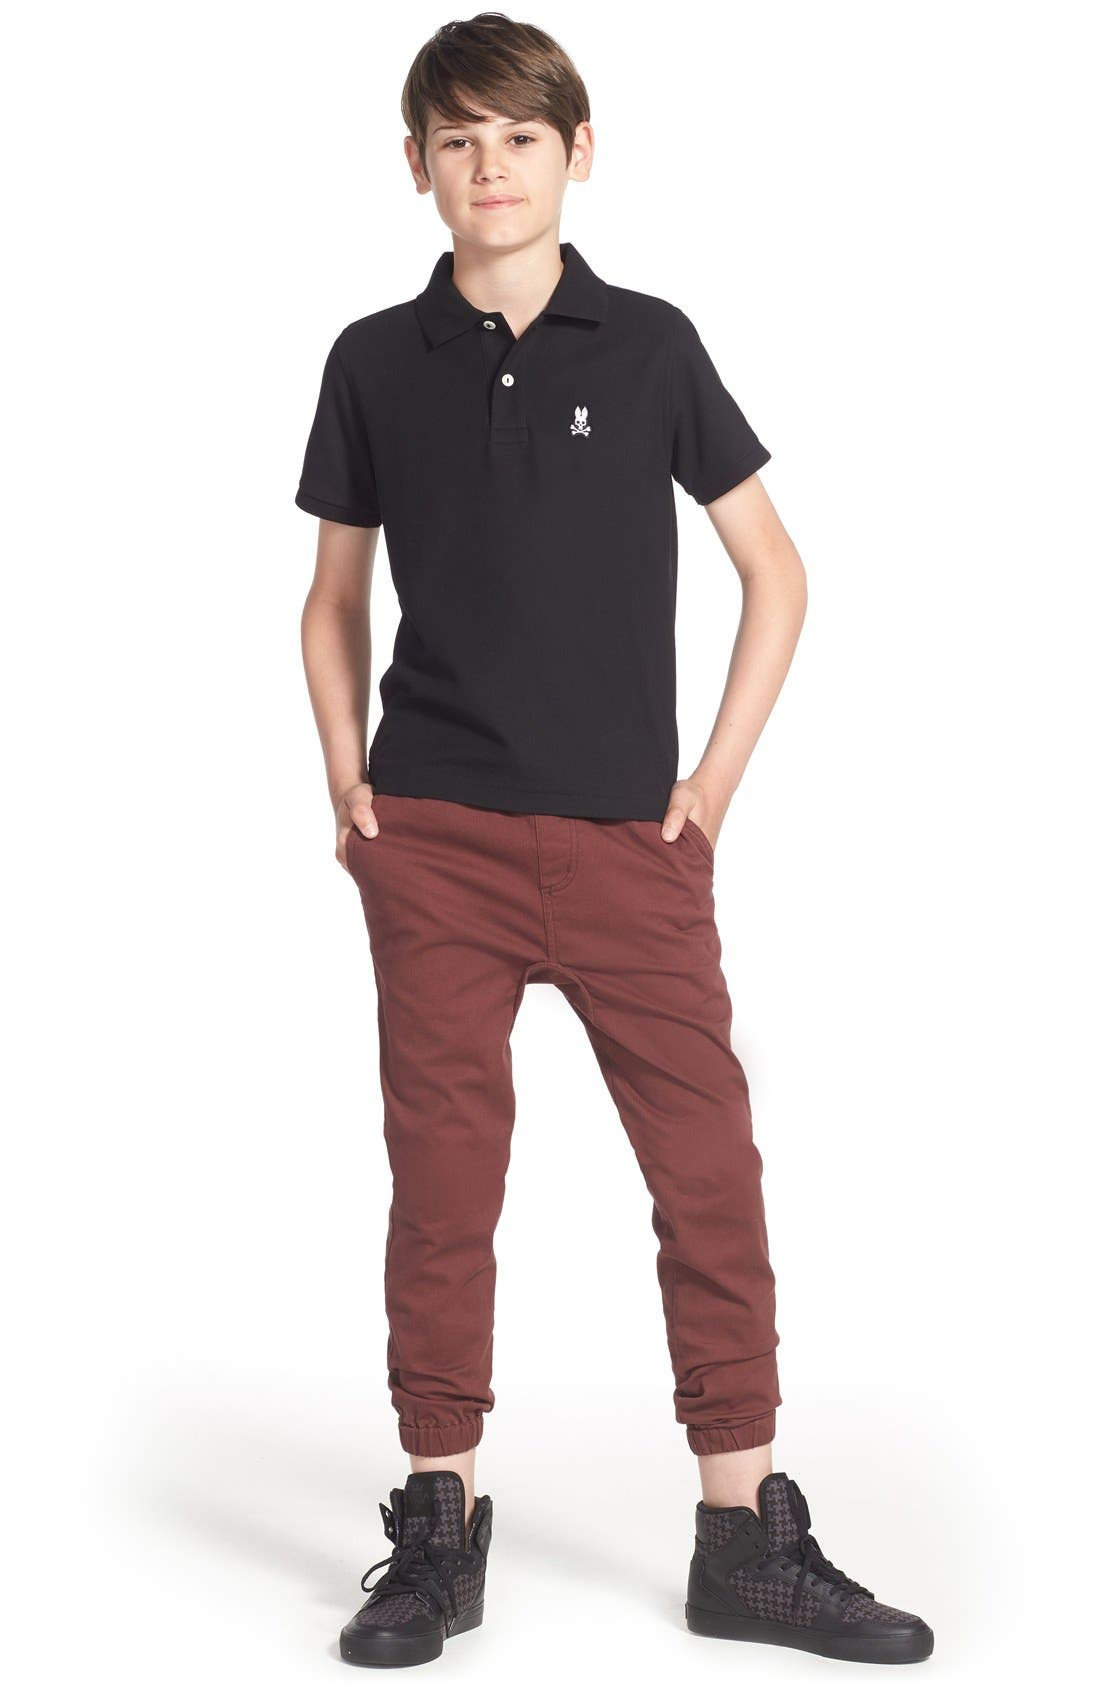 Volcom Polo, Tucker + Tate Jogger Pants & Accessories